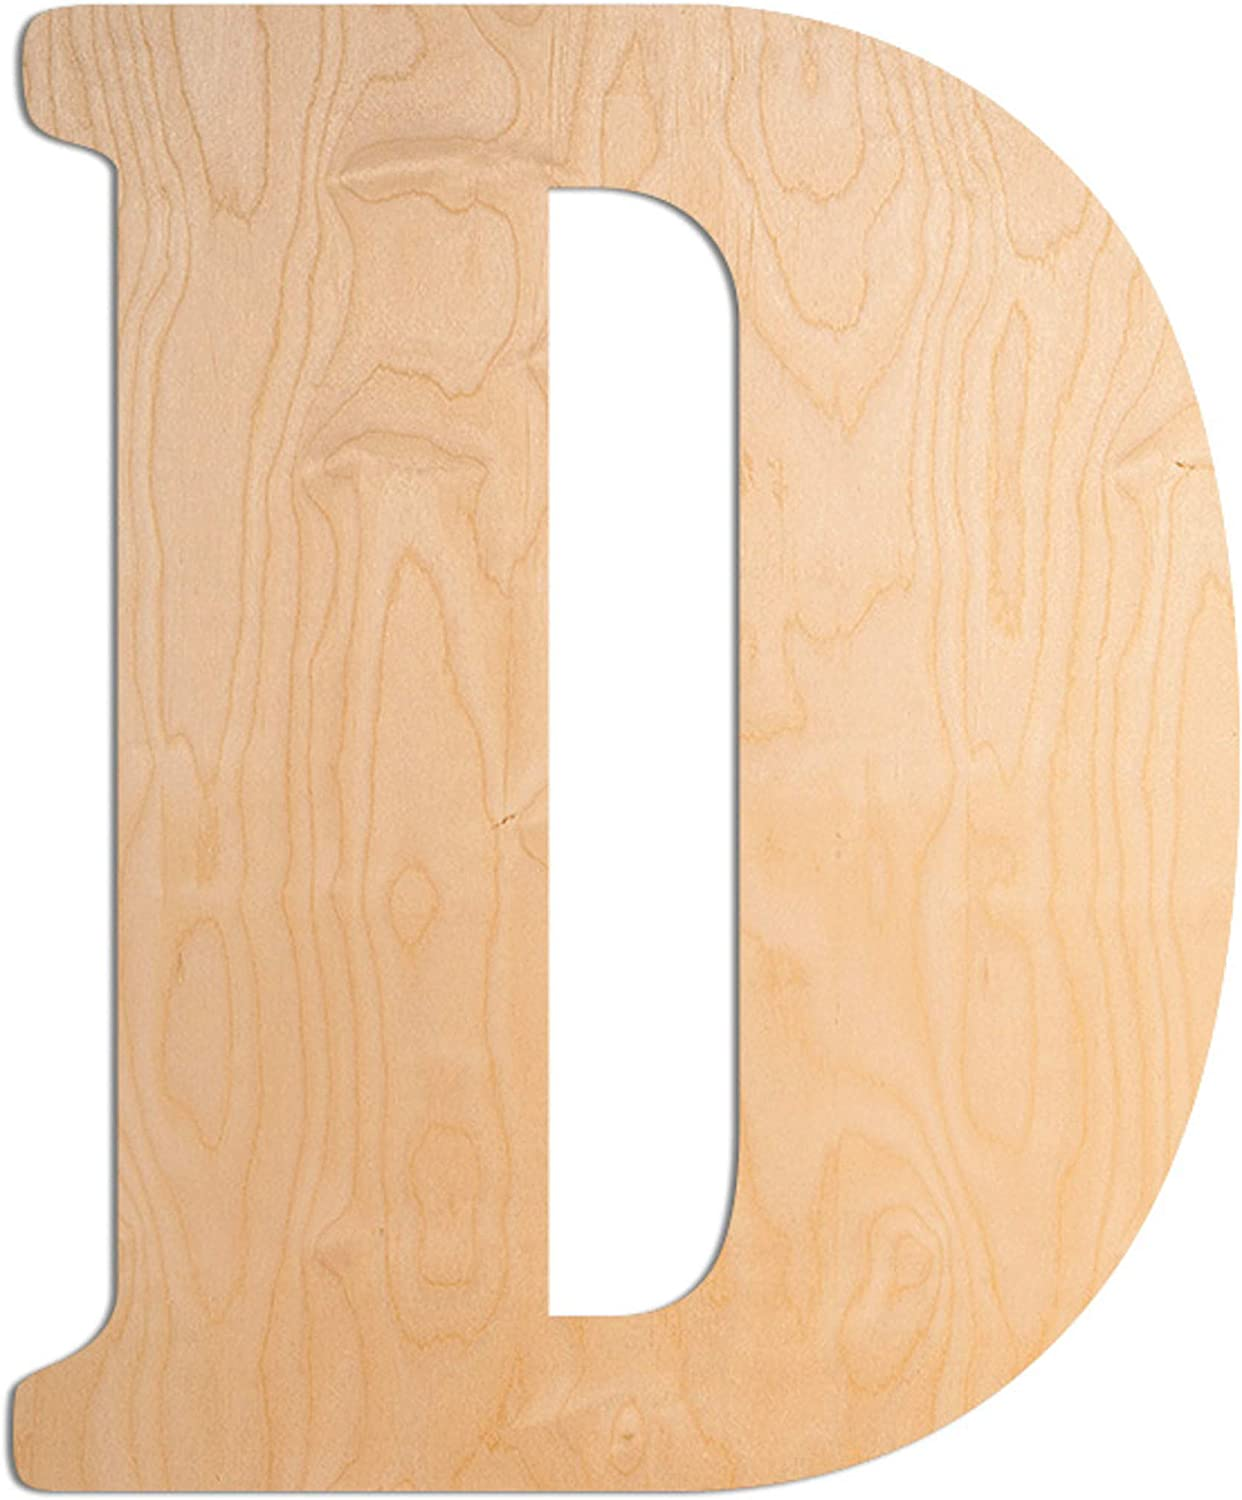 UNFINISHEDWOODCO Wooden Letter Monogram Room Décor - 15 Inches Tall - Unfinished Vintage Wood Letter Large Initials for Bedroom, Wall Decor Above Baby Crib, Nursery or Teen Room - Letter D